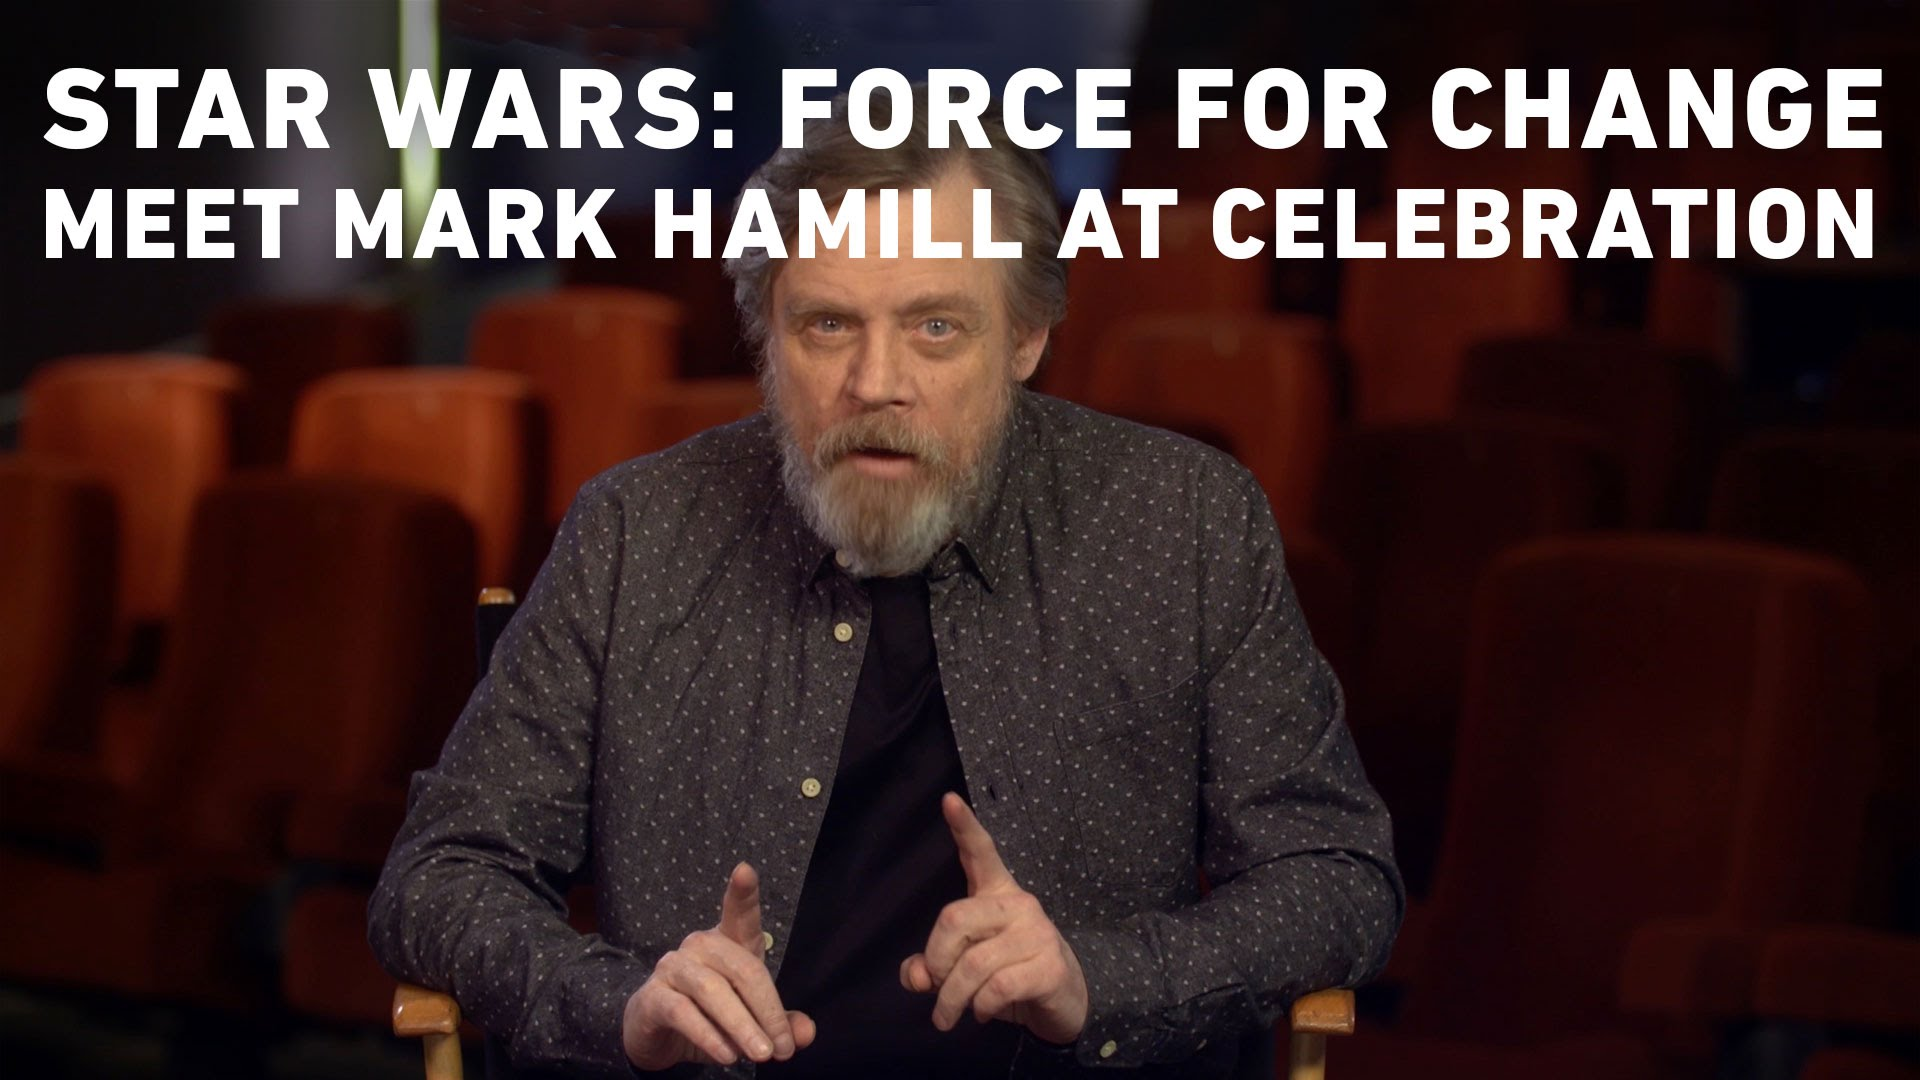 Star Wars: Force for Change – Your Chance To Win Tickets to Celebration and Meet Mark Hamill